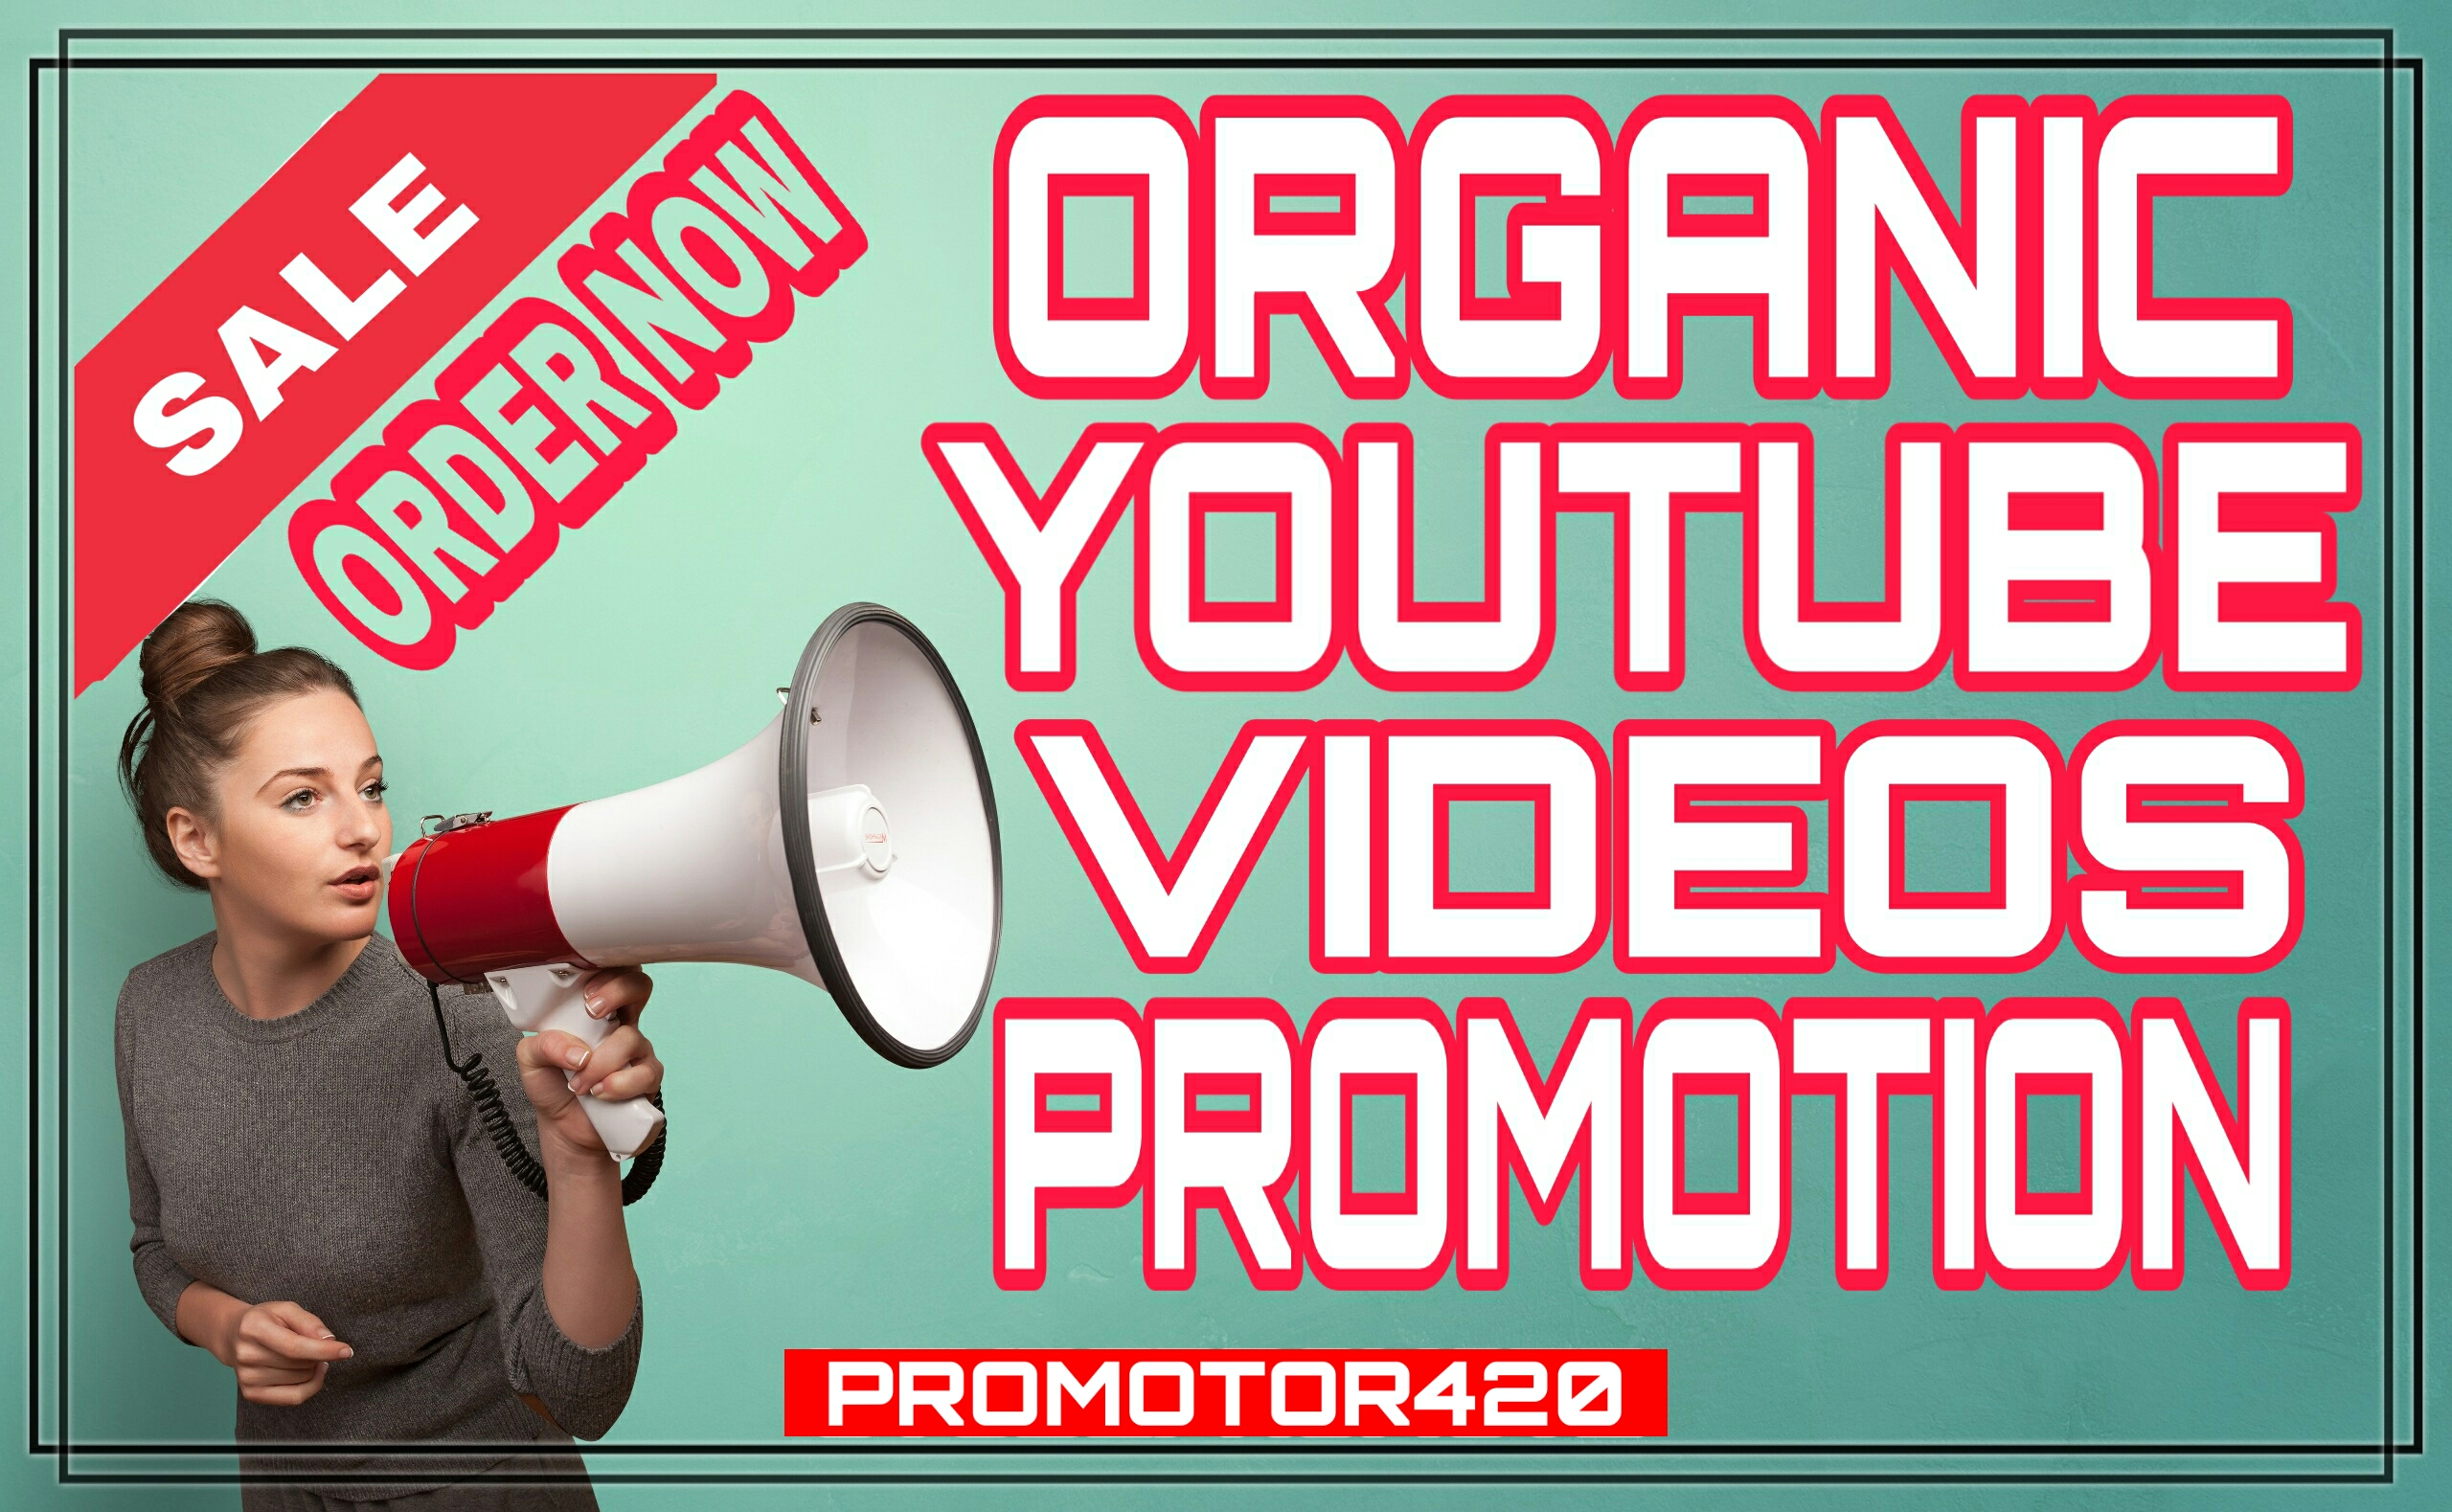 HQ youtube video promotion & marketing by RAV